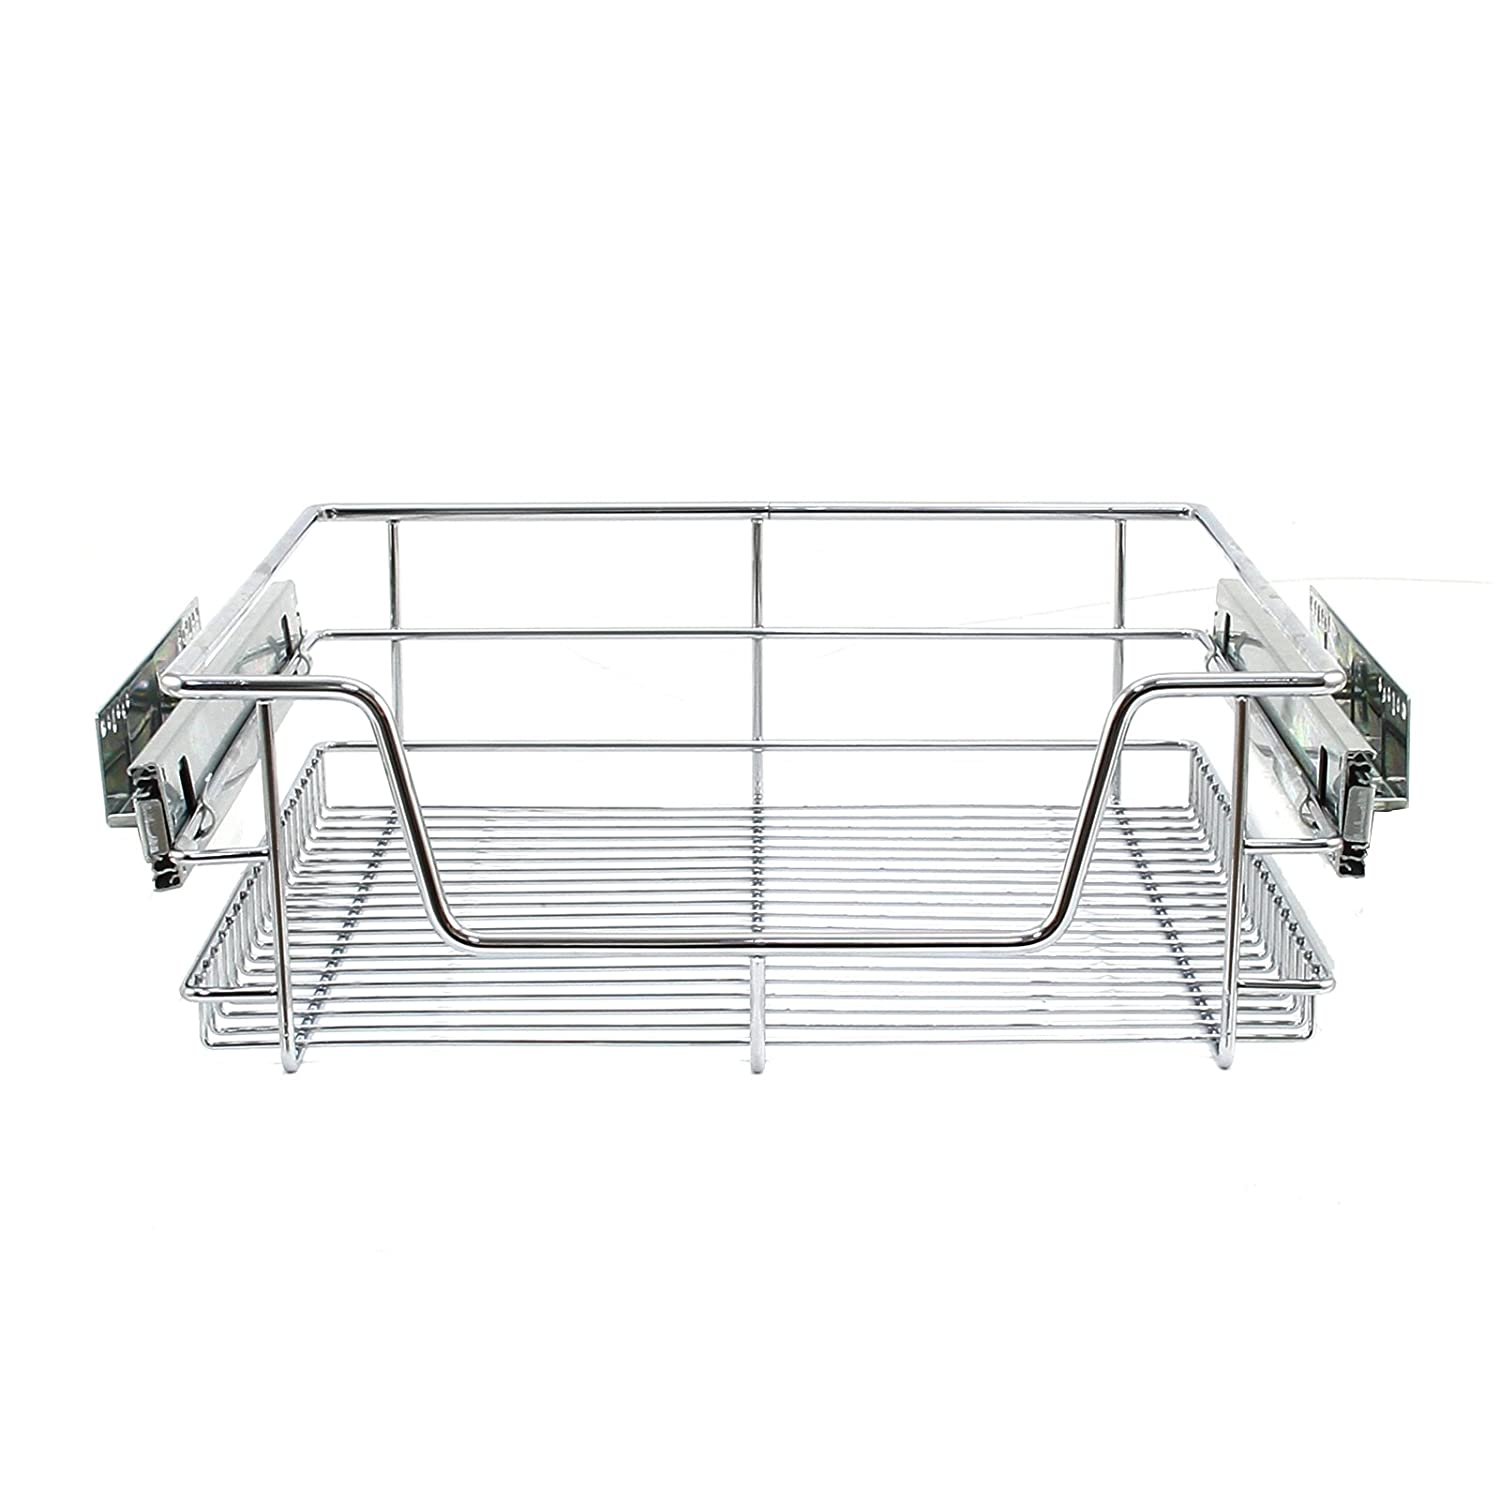 KuKoo 5 x Kitchen Pull Out Soft Close Baskets, 500mm Wide Cabinet, Slide Out Wire Storage Drawers MonsterShop